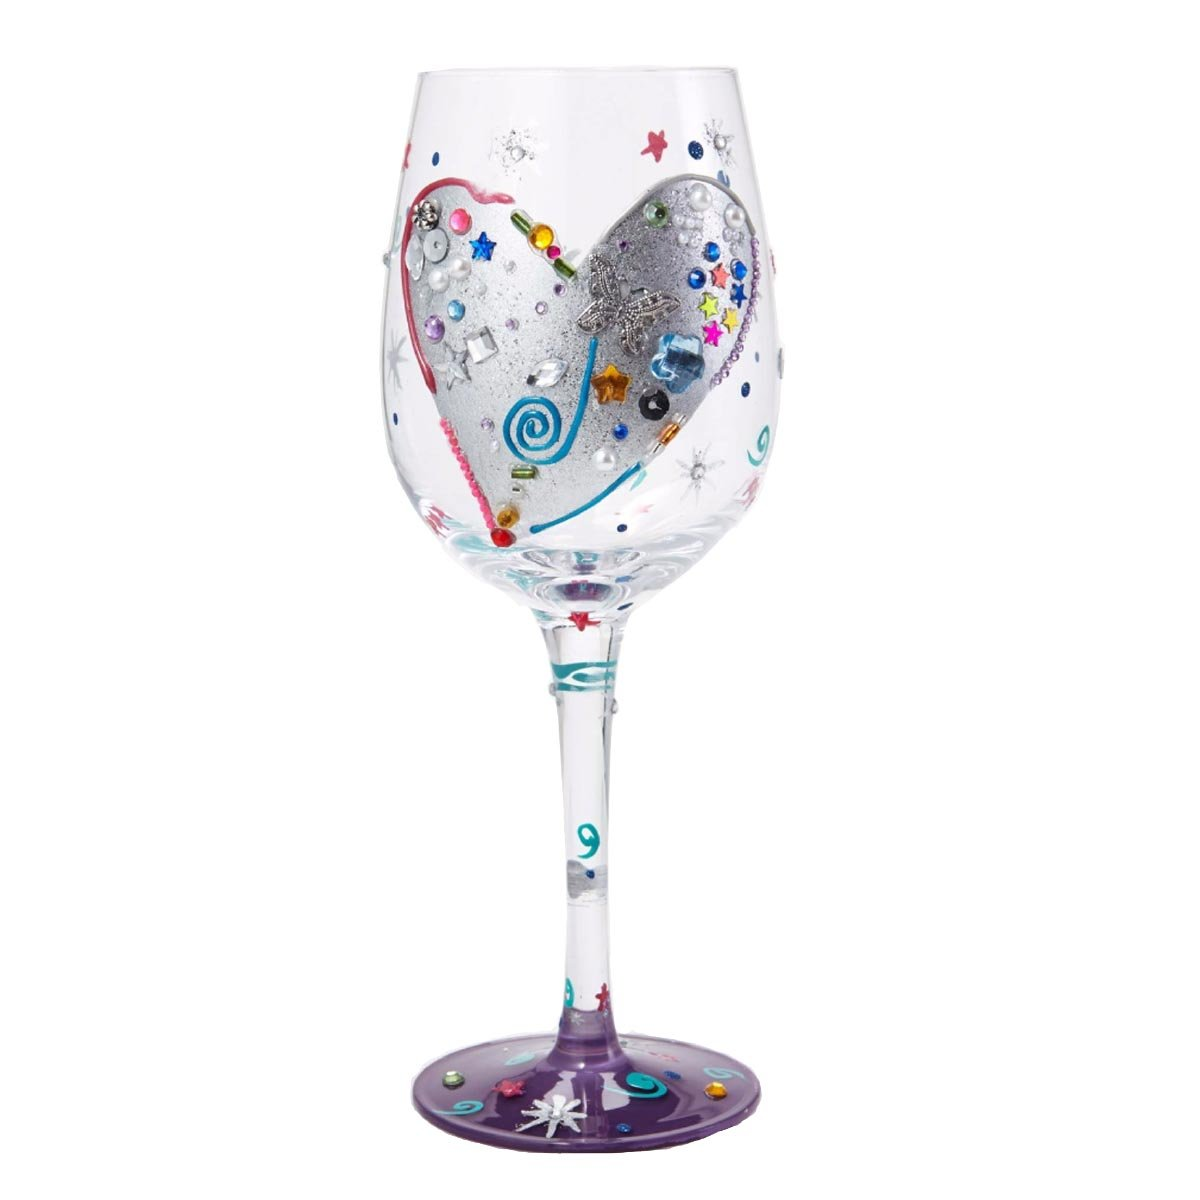 cocktail silver cheap wine handmade t martini red in horse decor champagne buy glasses decorative glass unleaded item price of shop gold pic guide and on wuse